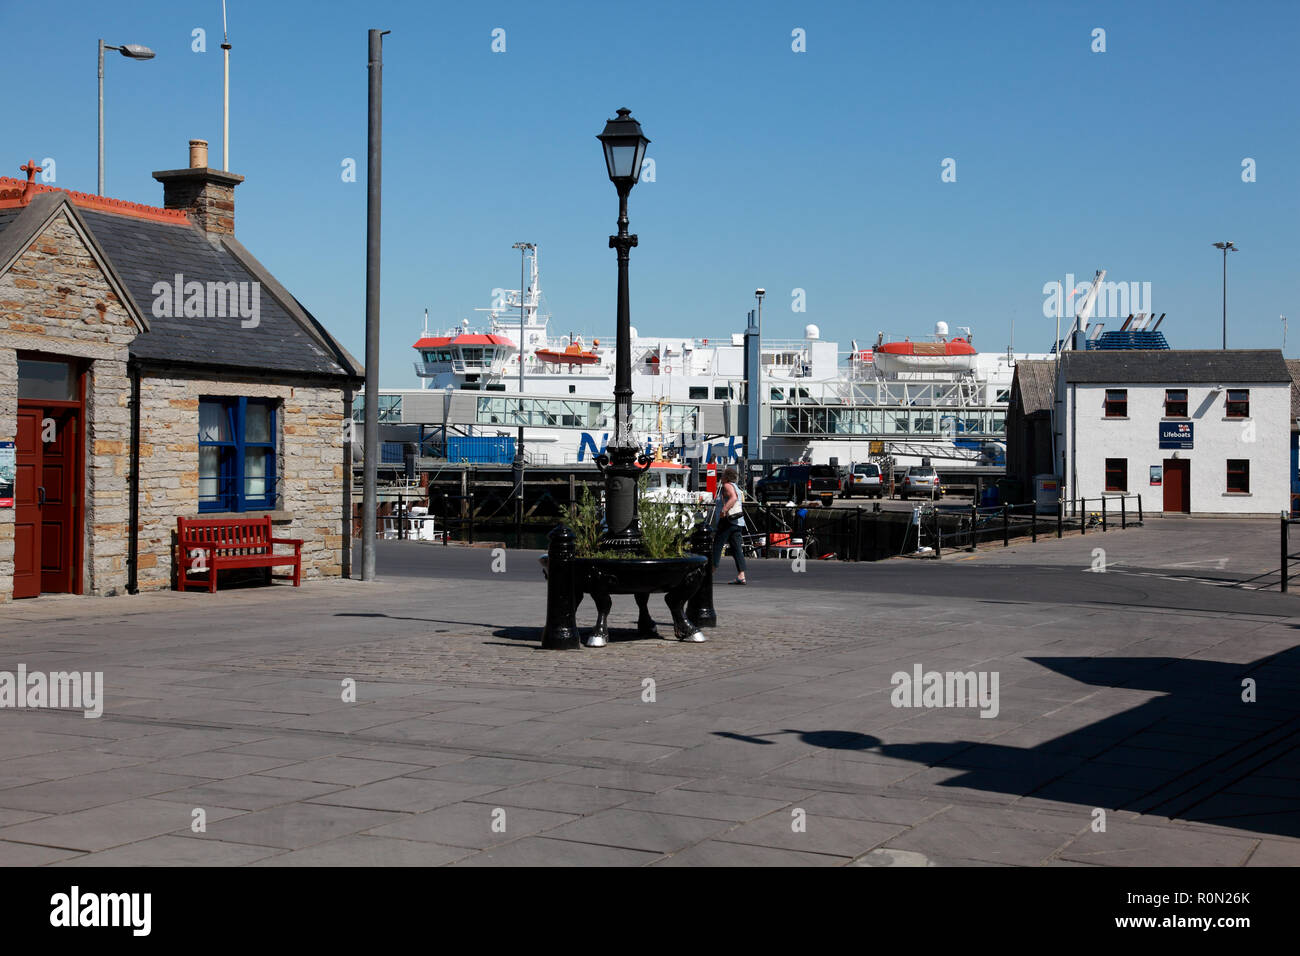 The Pierhead and harbour in Stromness, Orkney, Scotland, the NorthLink ferry Hamnavoe in the background - Stock Image